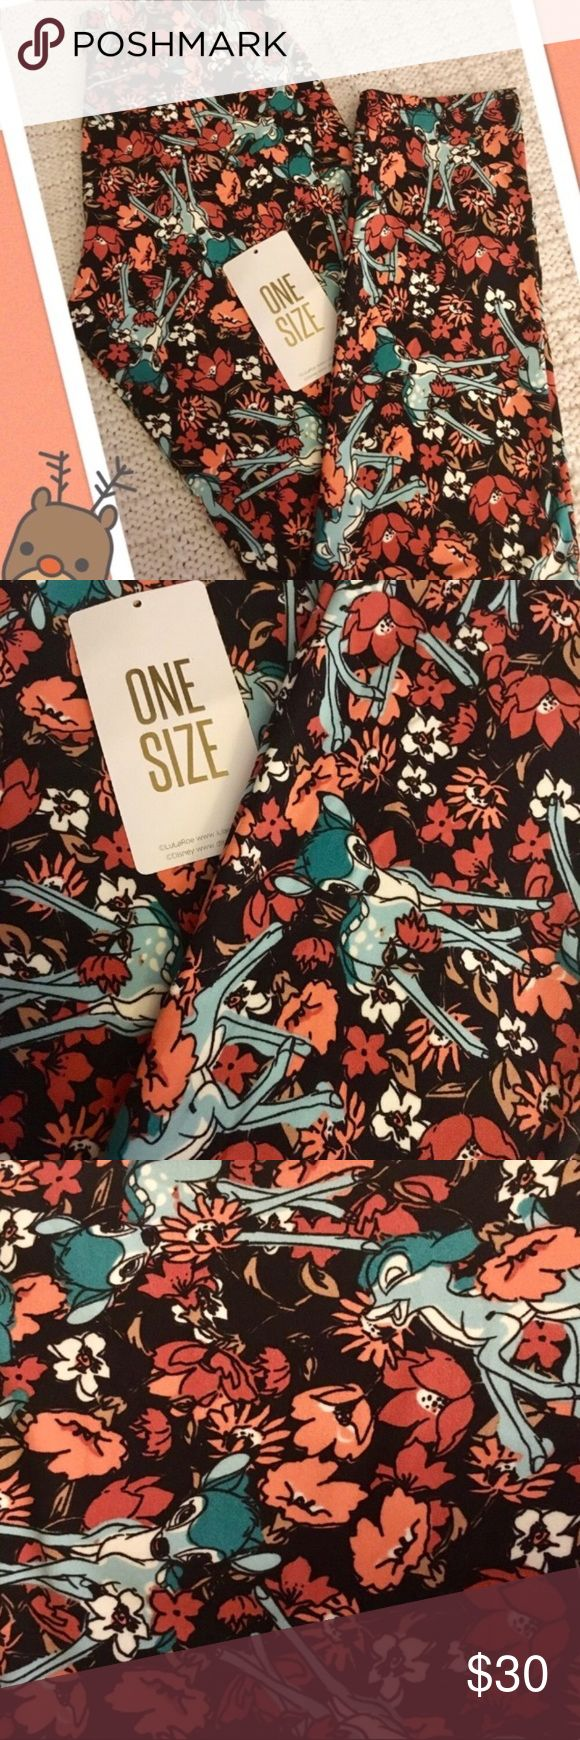 🦌Bambi! LulaRoe Disney One Size Leggings!🦌 🦌LulaRoe Disney One Size Leggings ~ Bambi! ~ These bottoms have a bouquet base with blue-hued Bambi ~ Don't pass these baby bucks!🦌 *Cross posted to another site                                                     All Leggings are bought brand new from consultants and come with and without tags. Each pair is inspected and never, ever been worn!:-) LuLaRoe Pants Leggings